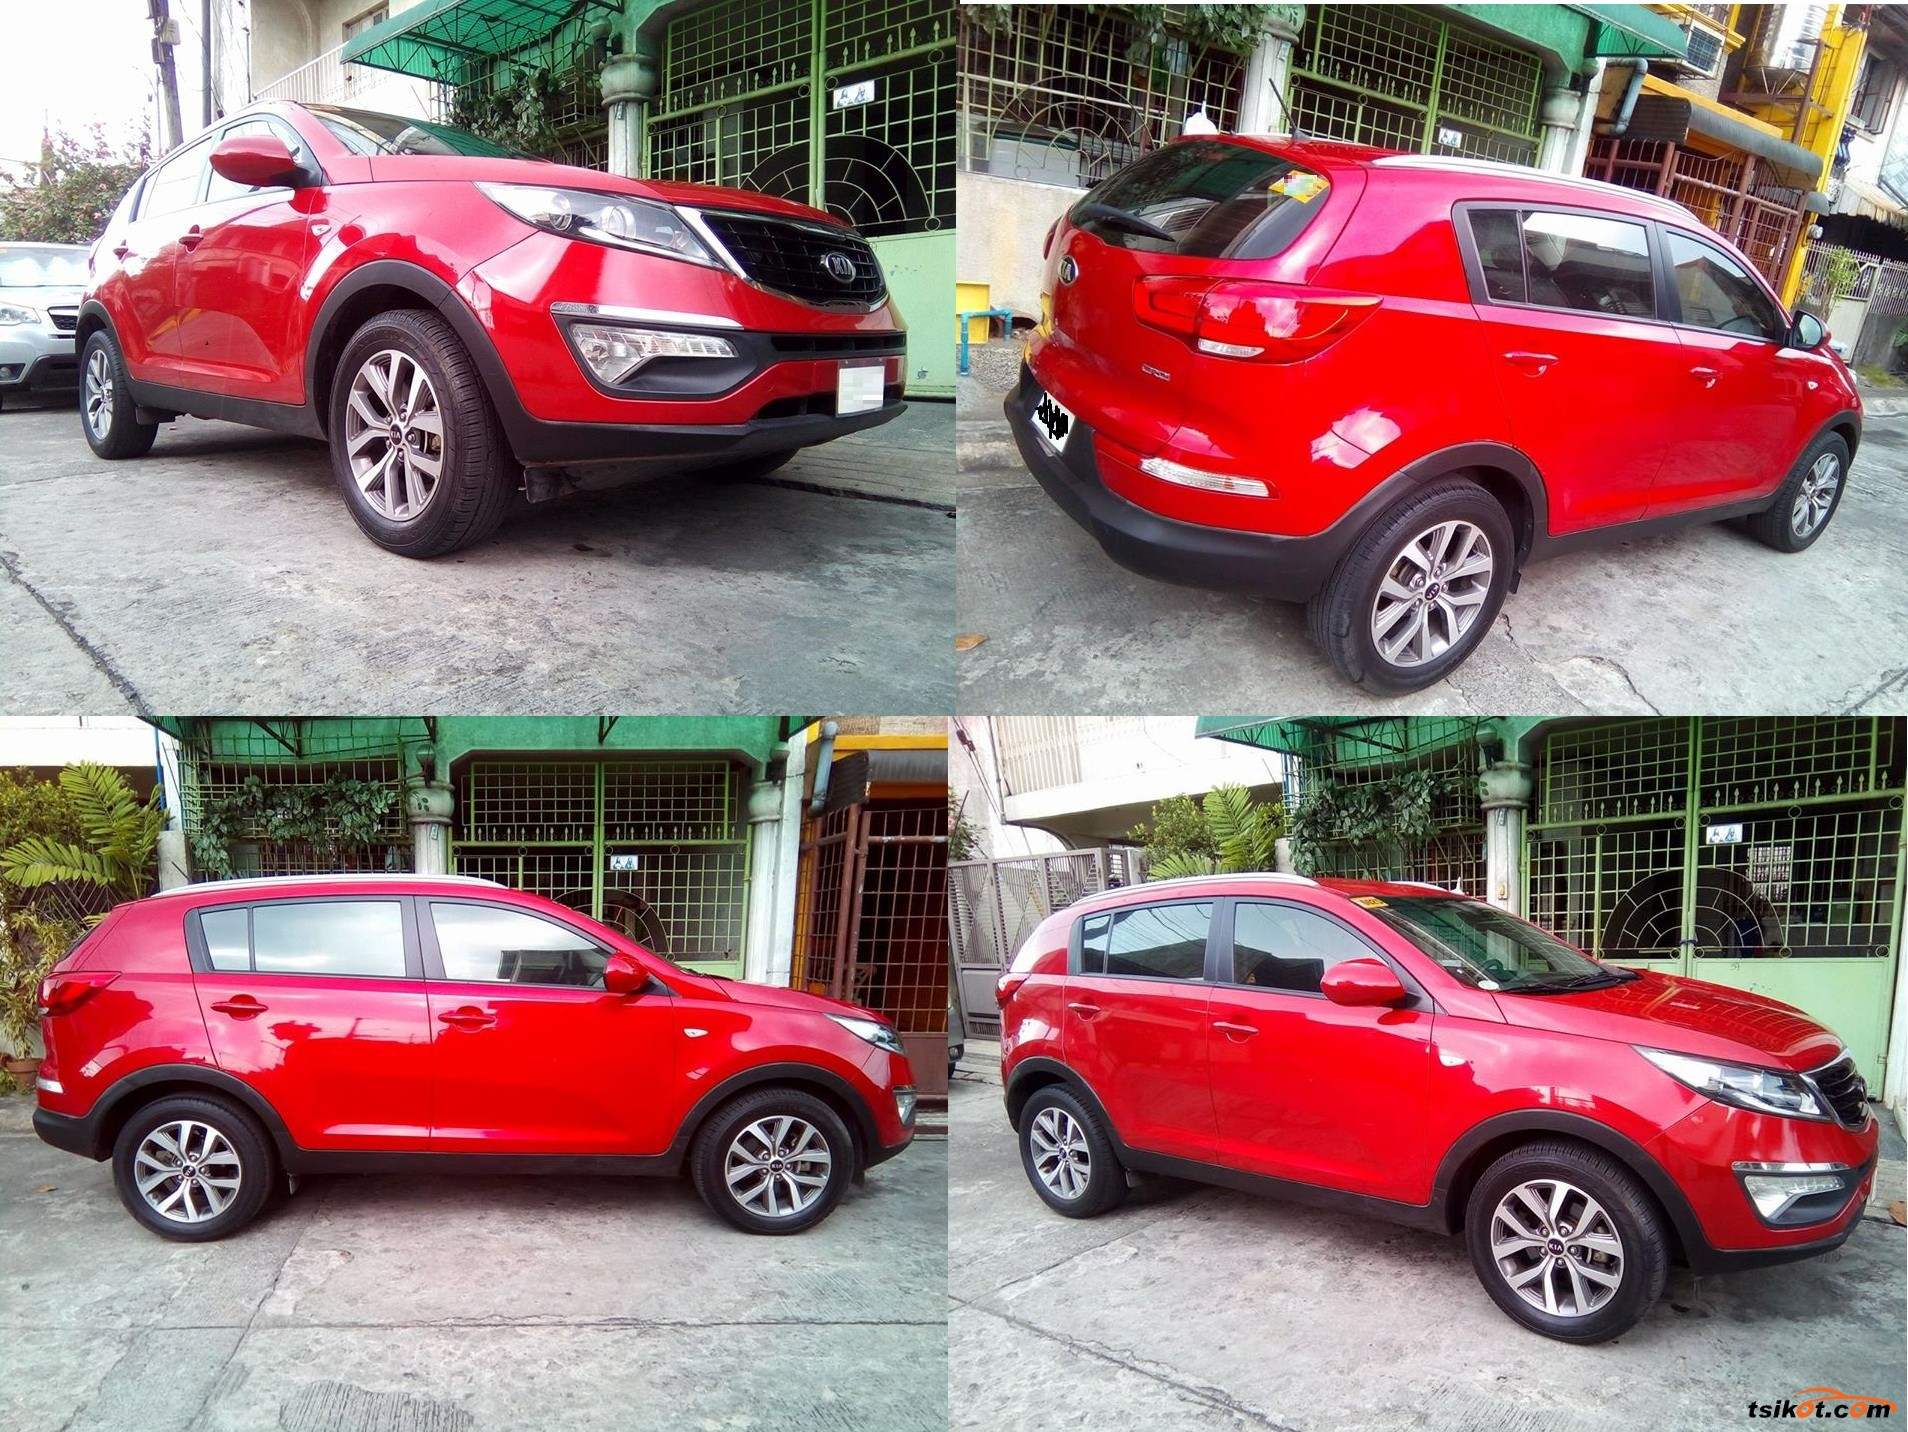 kia sportage 2015 car for sale metro manila philippines. Black Bedroom Furniture Sets. Home Design Ideas